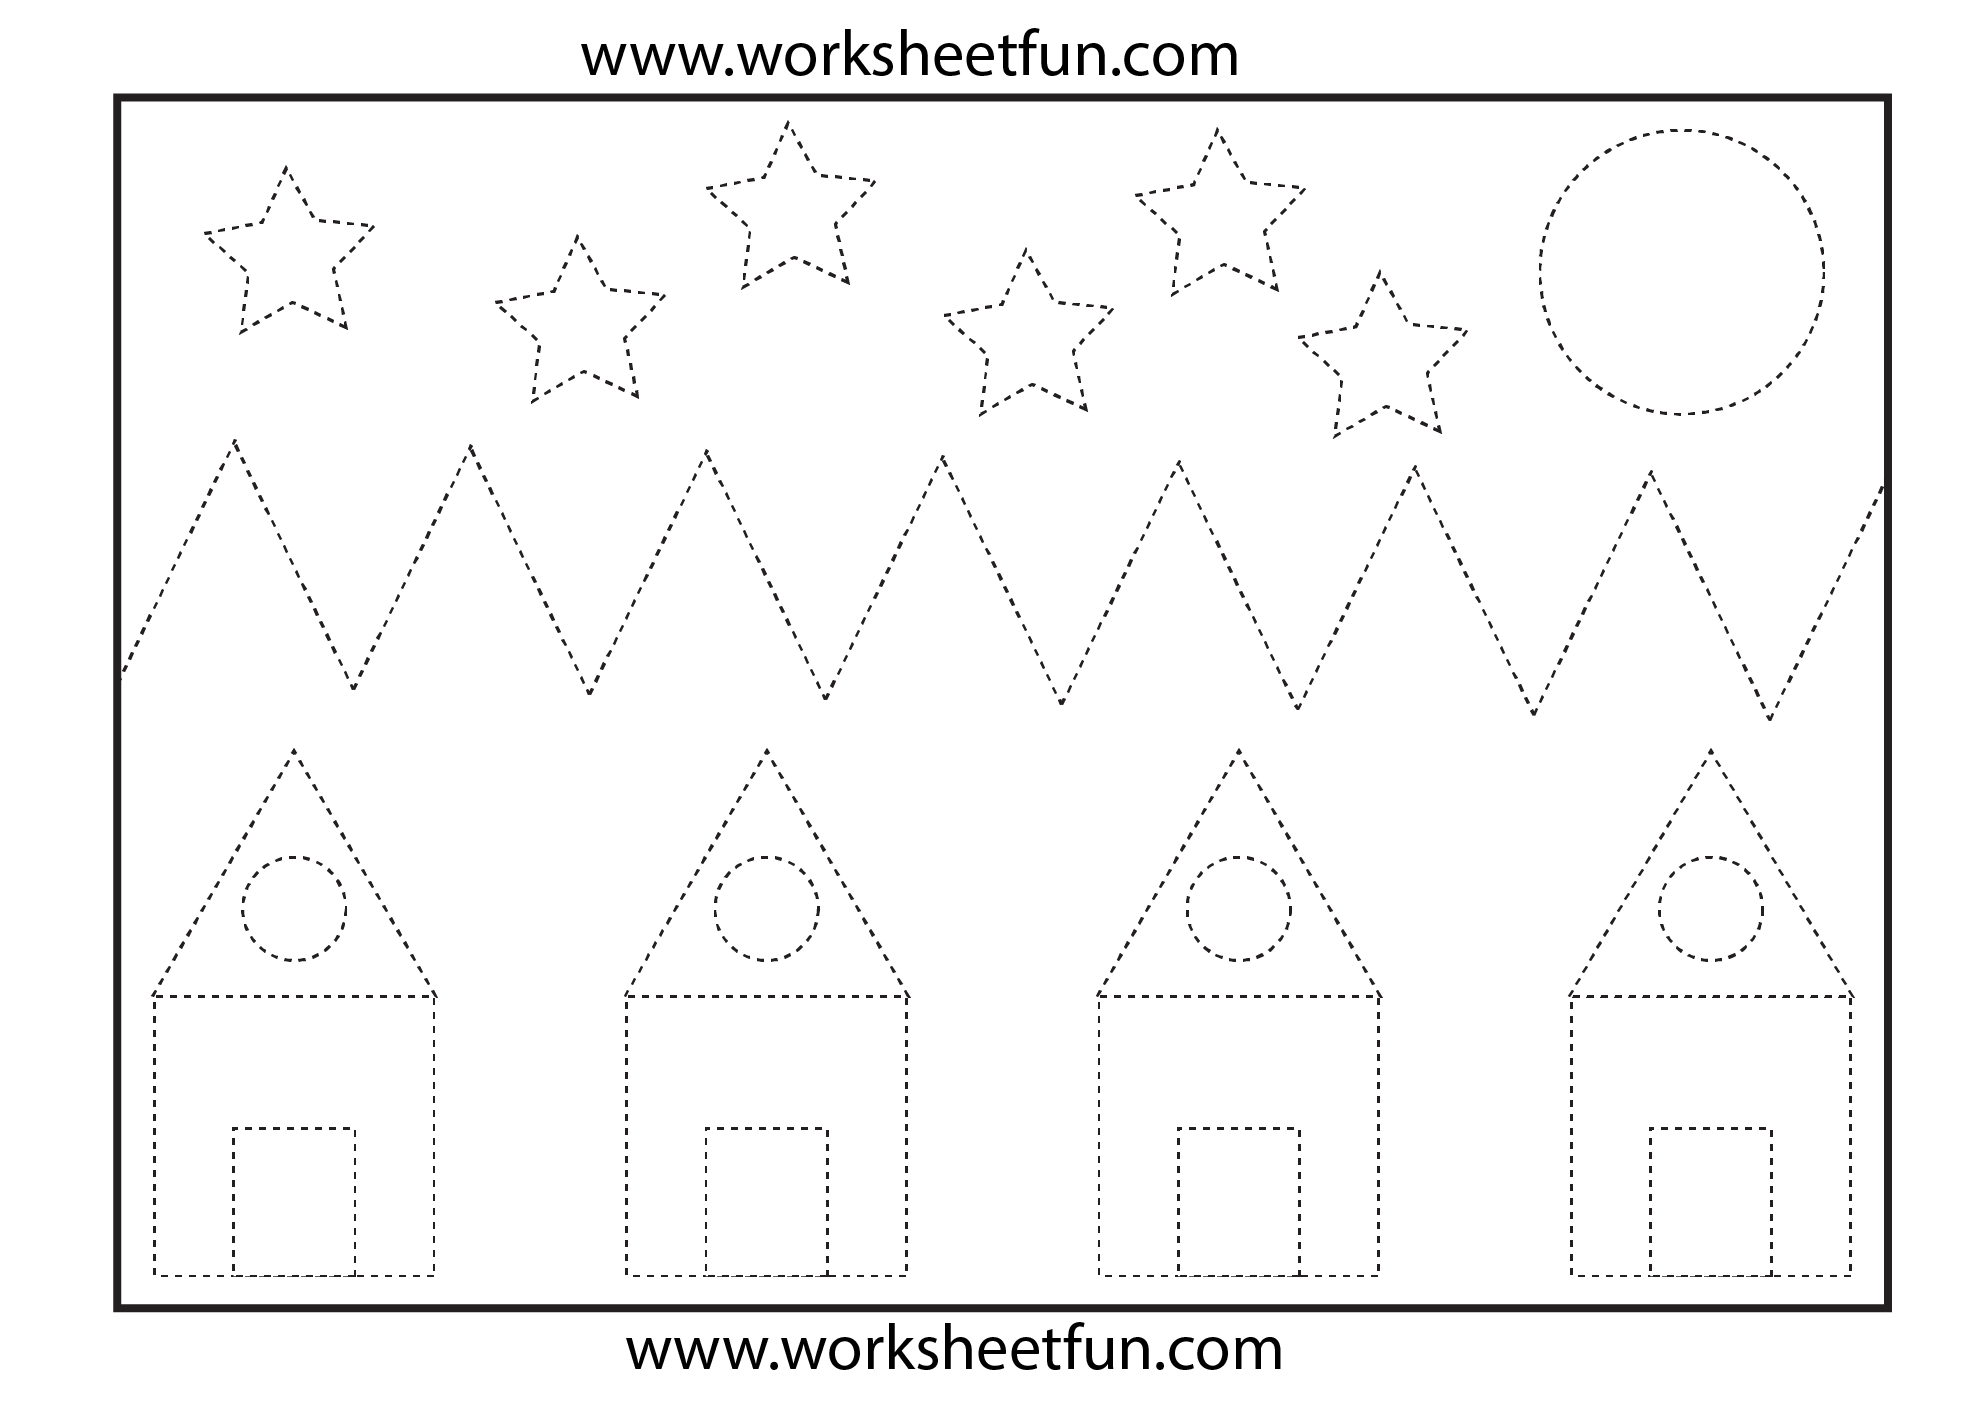 Worksheet Tracer Worksheets 1000 images about kallu on pinterest printable alphabet letters preschool worksheets and preschool